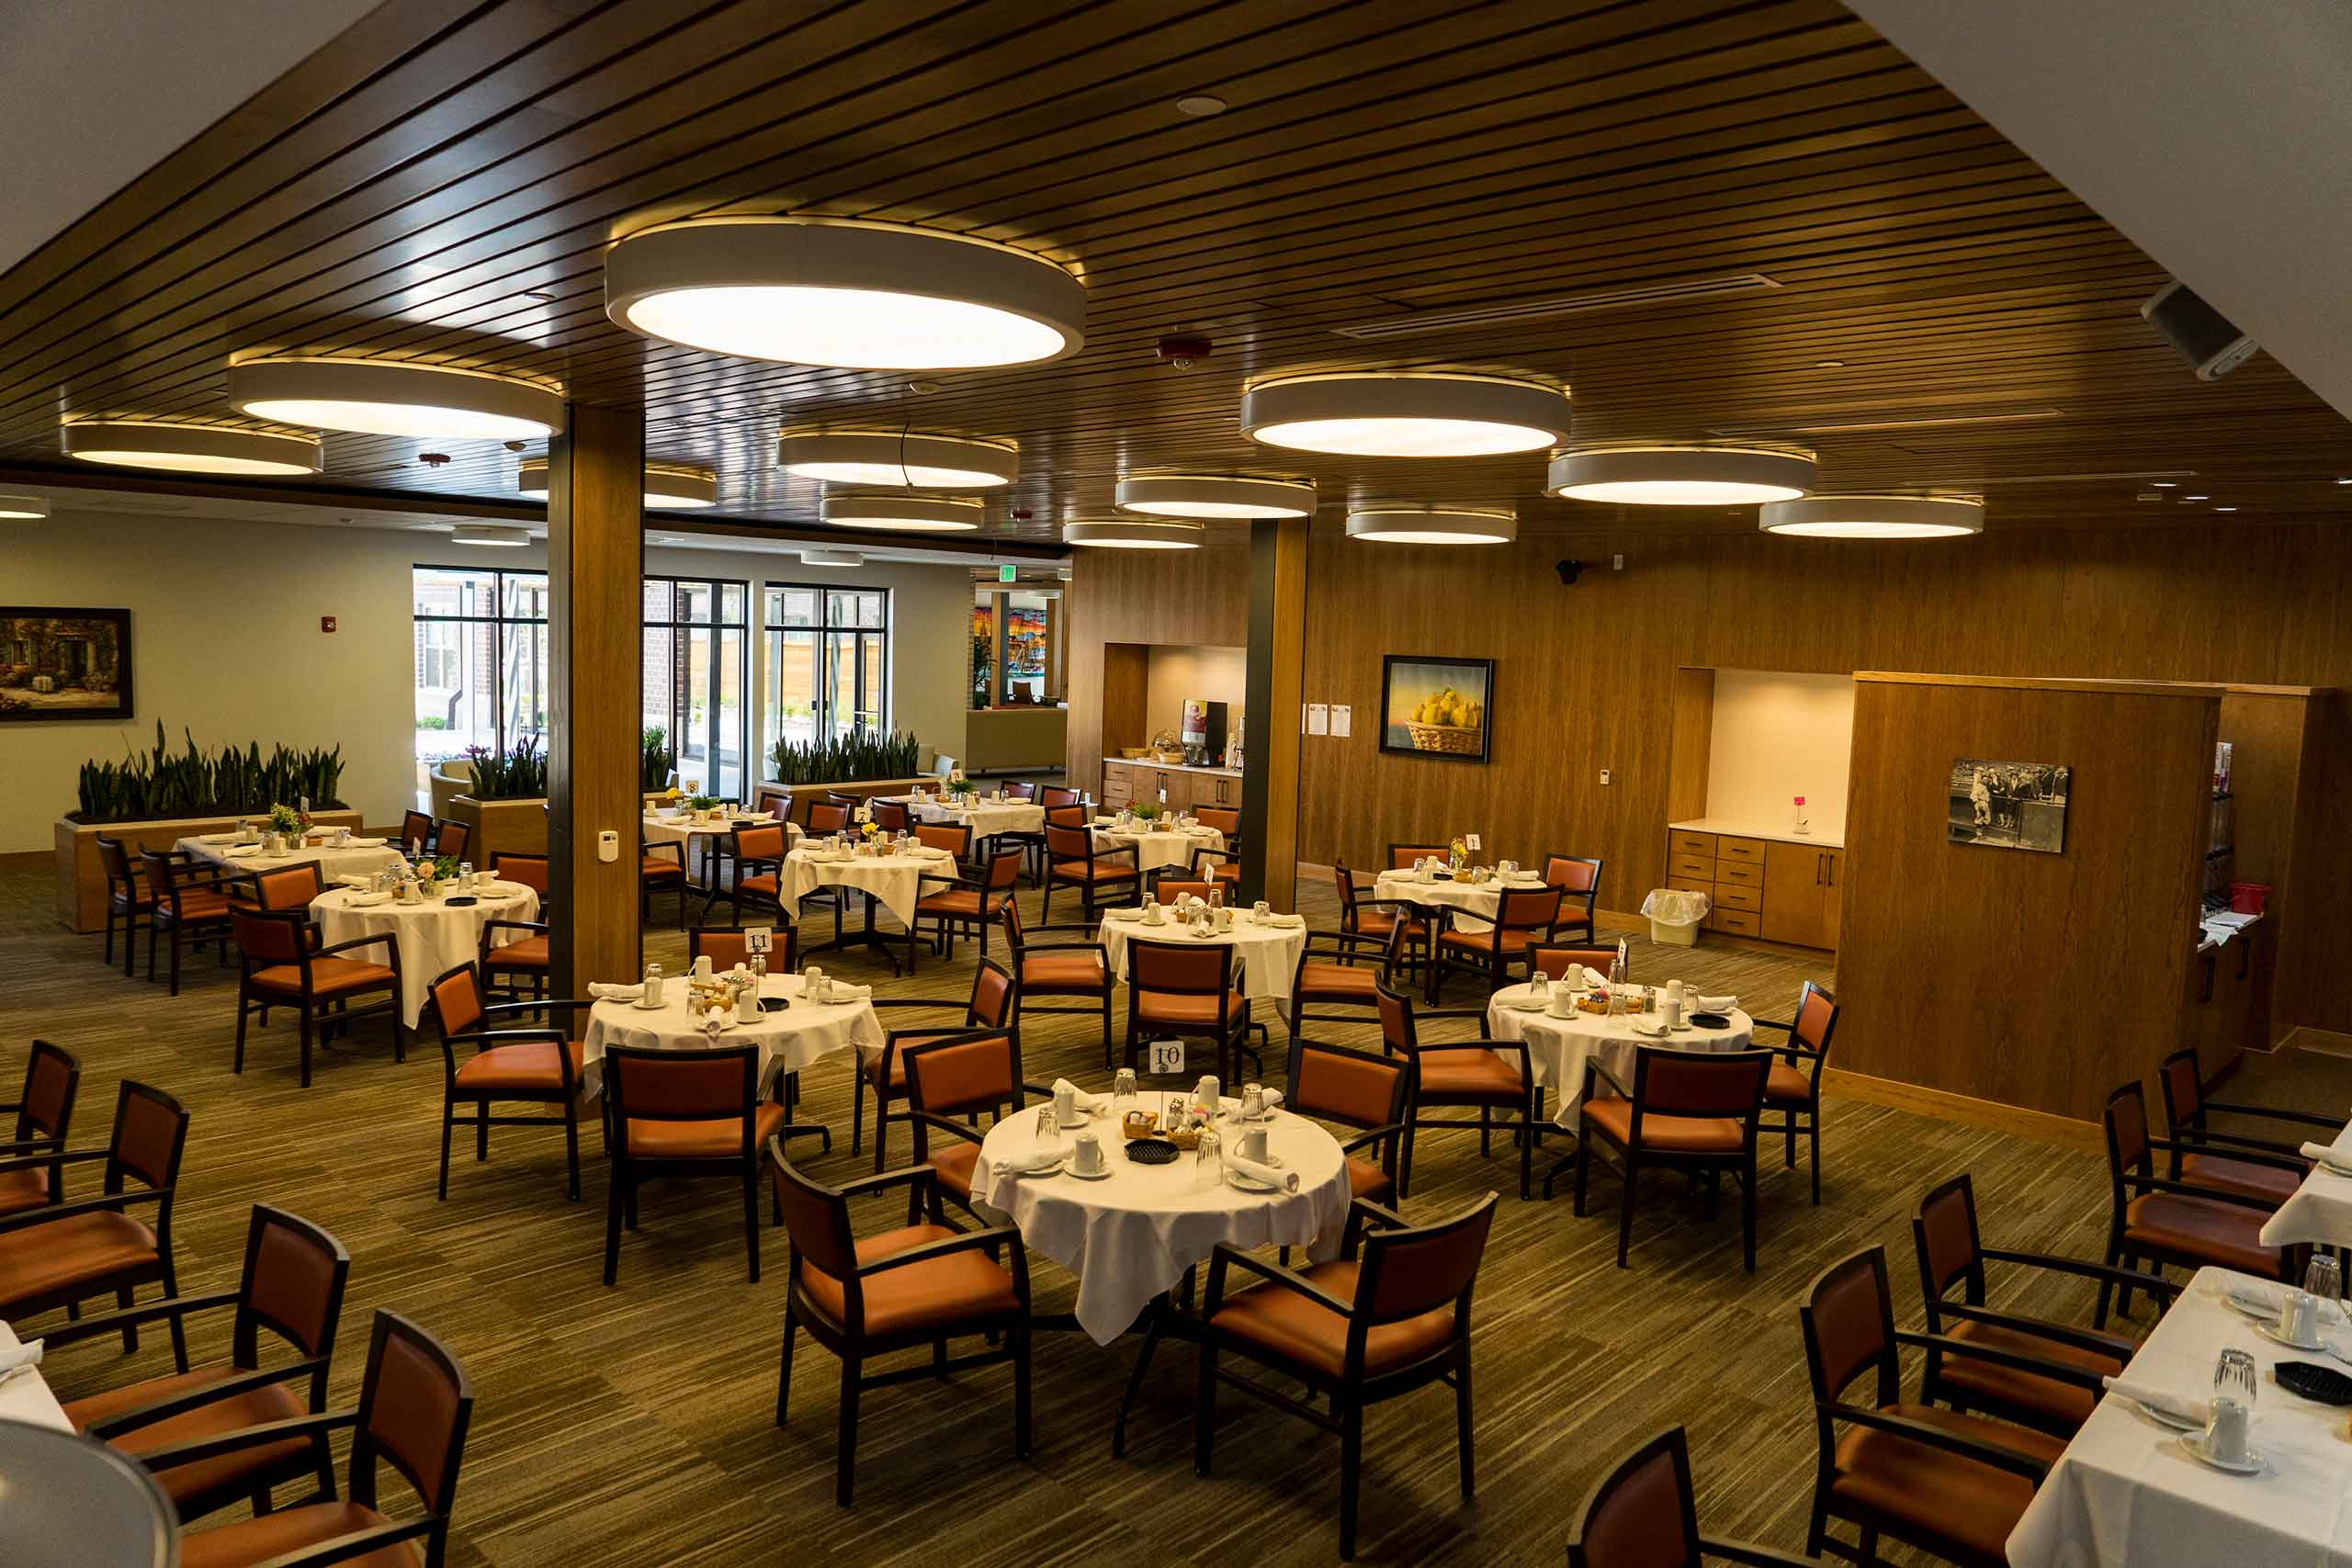 Silvercrest-at-College-View-AL-Dining-Room-Wide